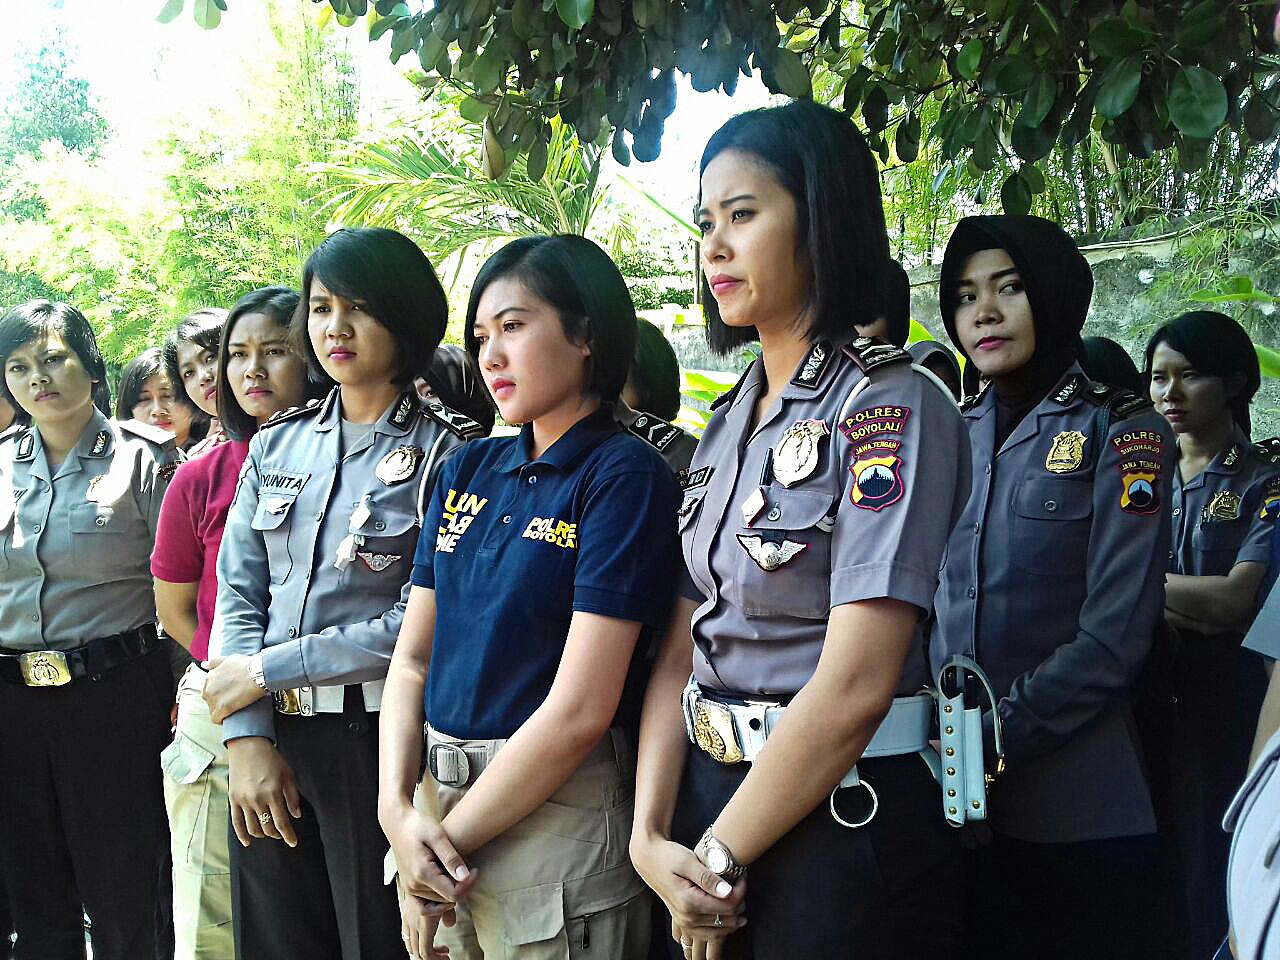 Indonesia urged to end discriminatory virginity test for female security force applicants